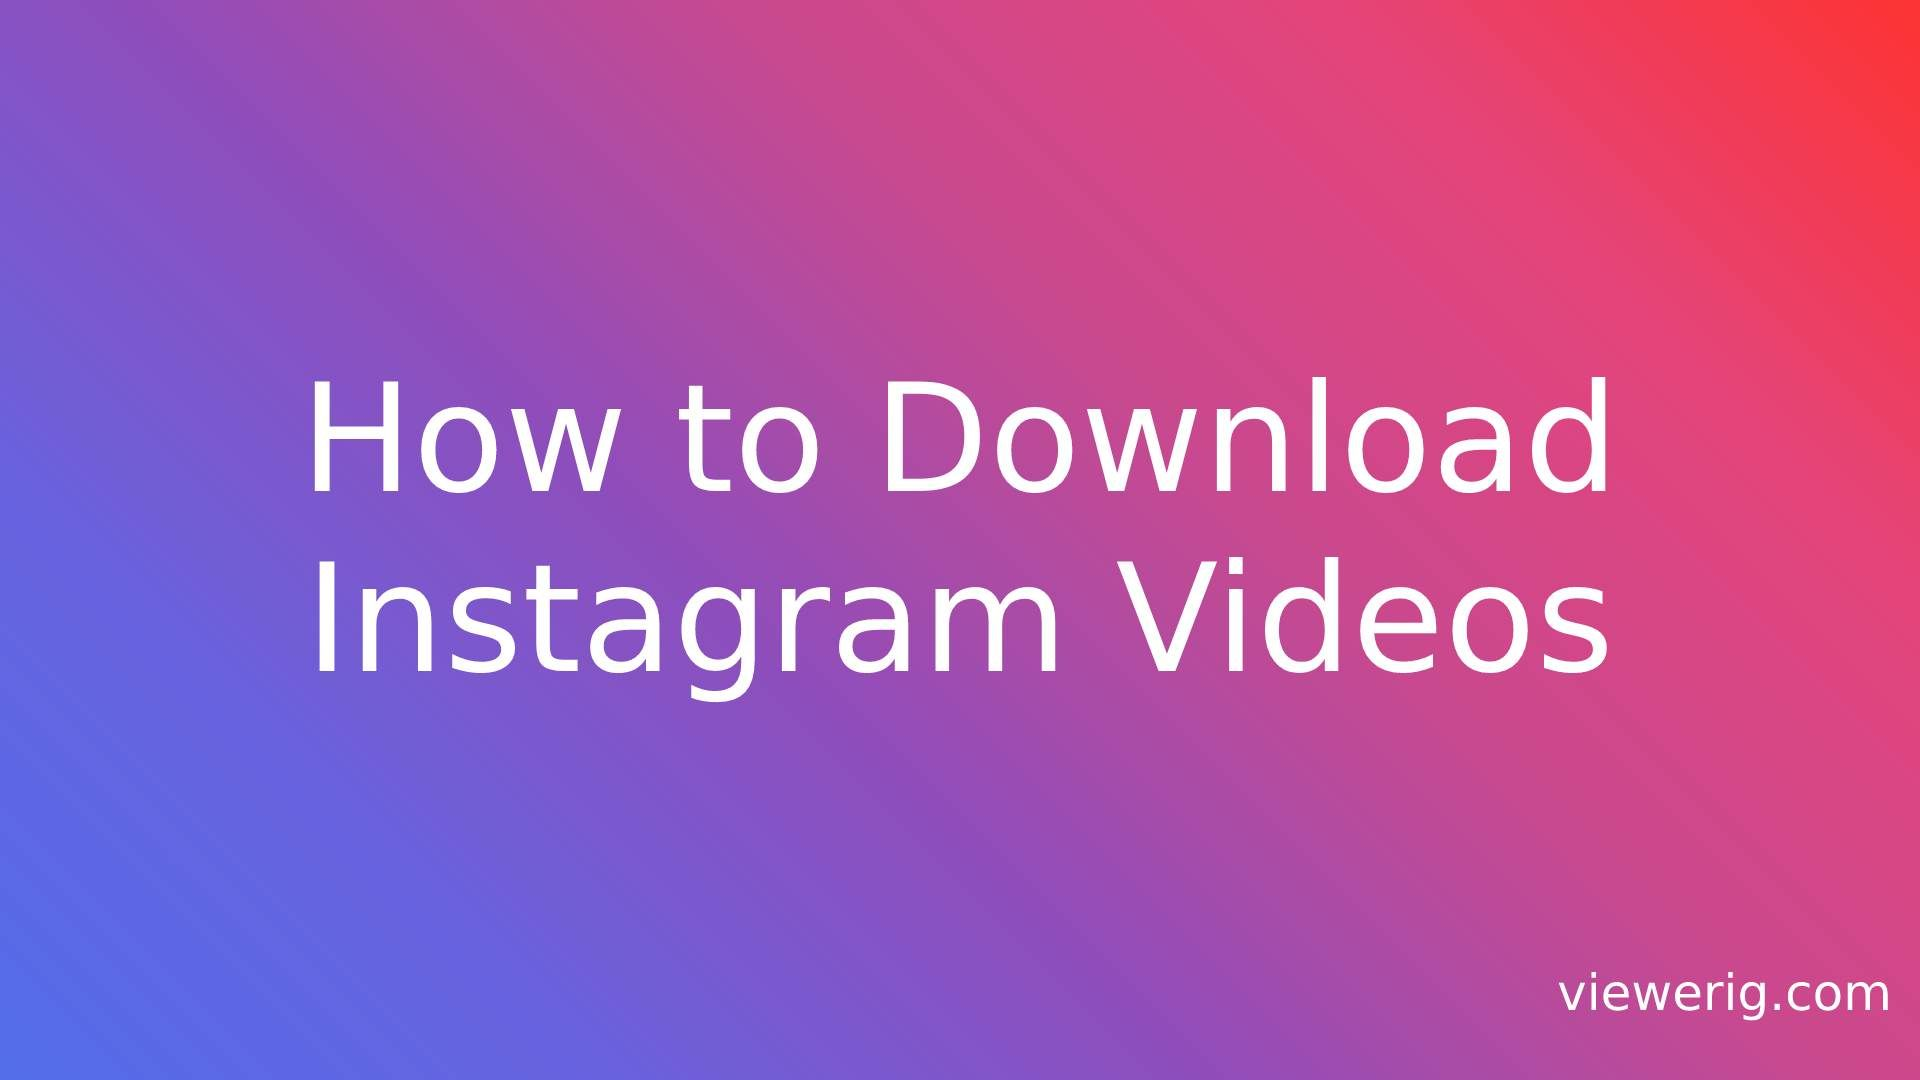 How to Download Instagram Videos?